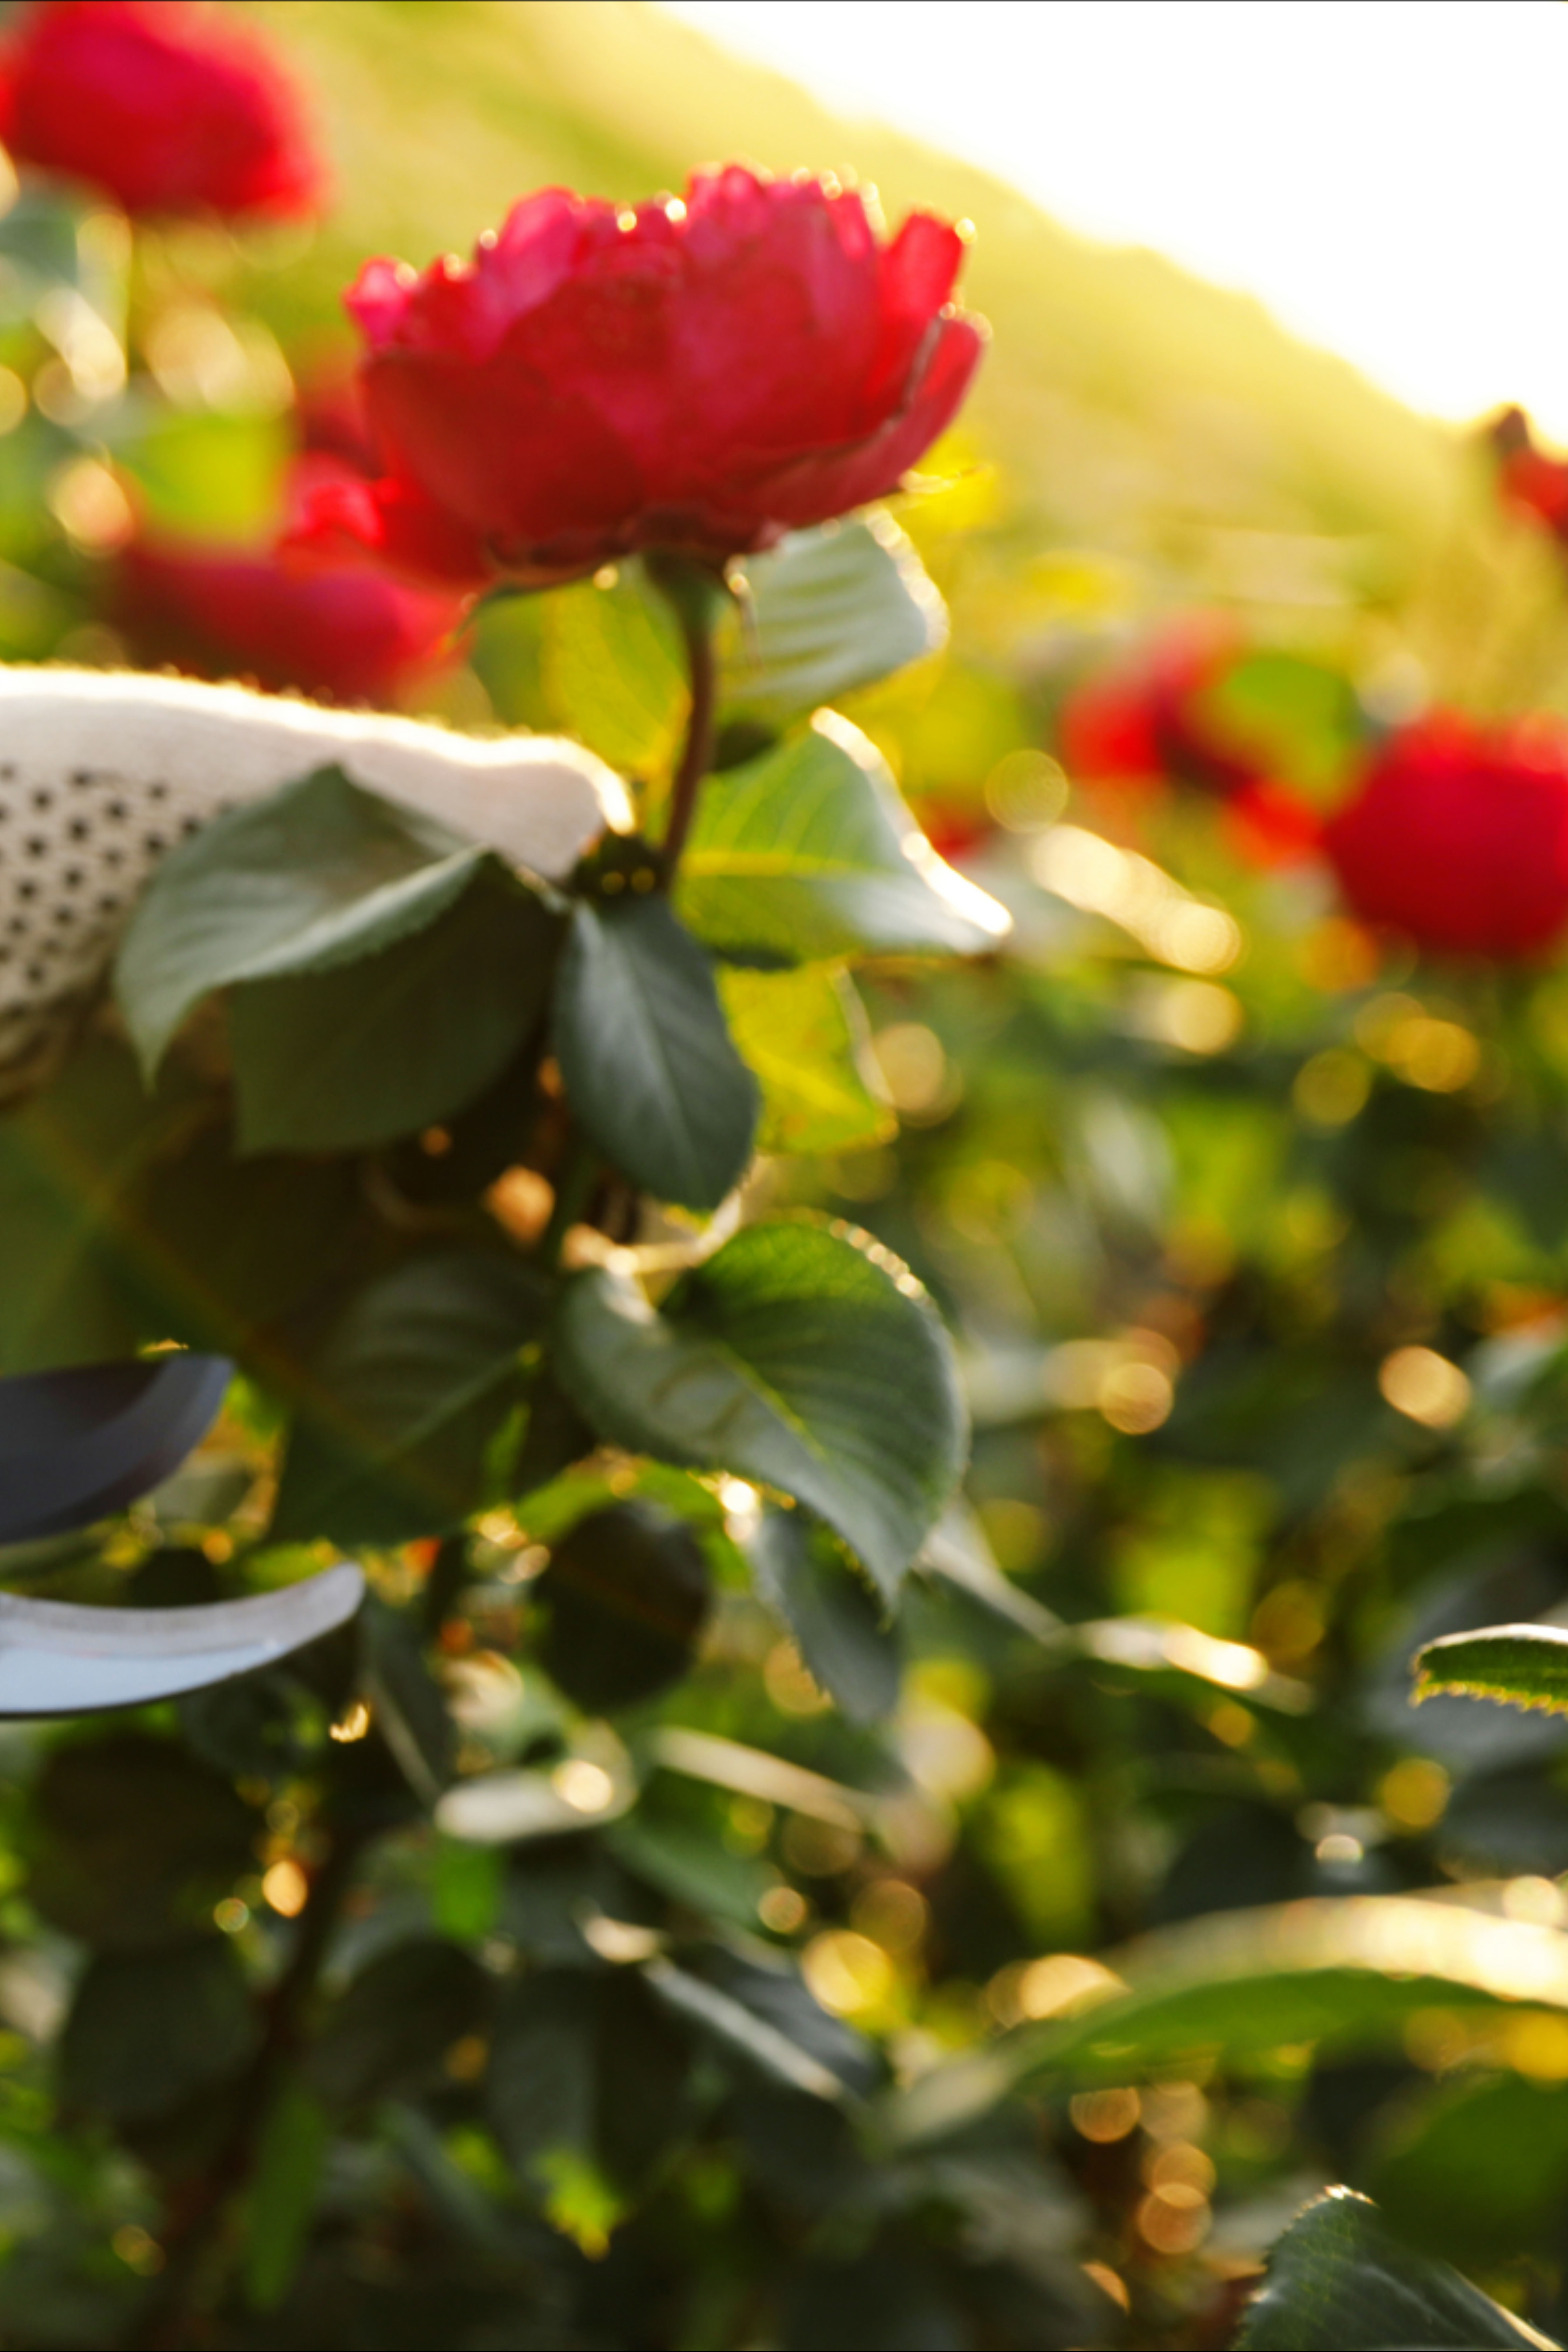 The Right Way To Prune Back A Rose Bush In 2021 Rose Bush Ground Cover Roses Pruning Roses